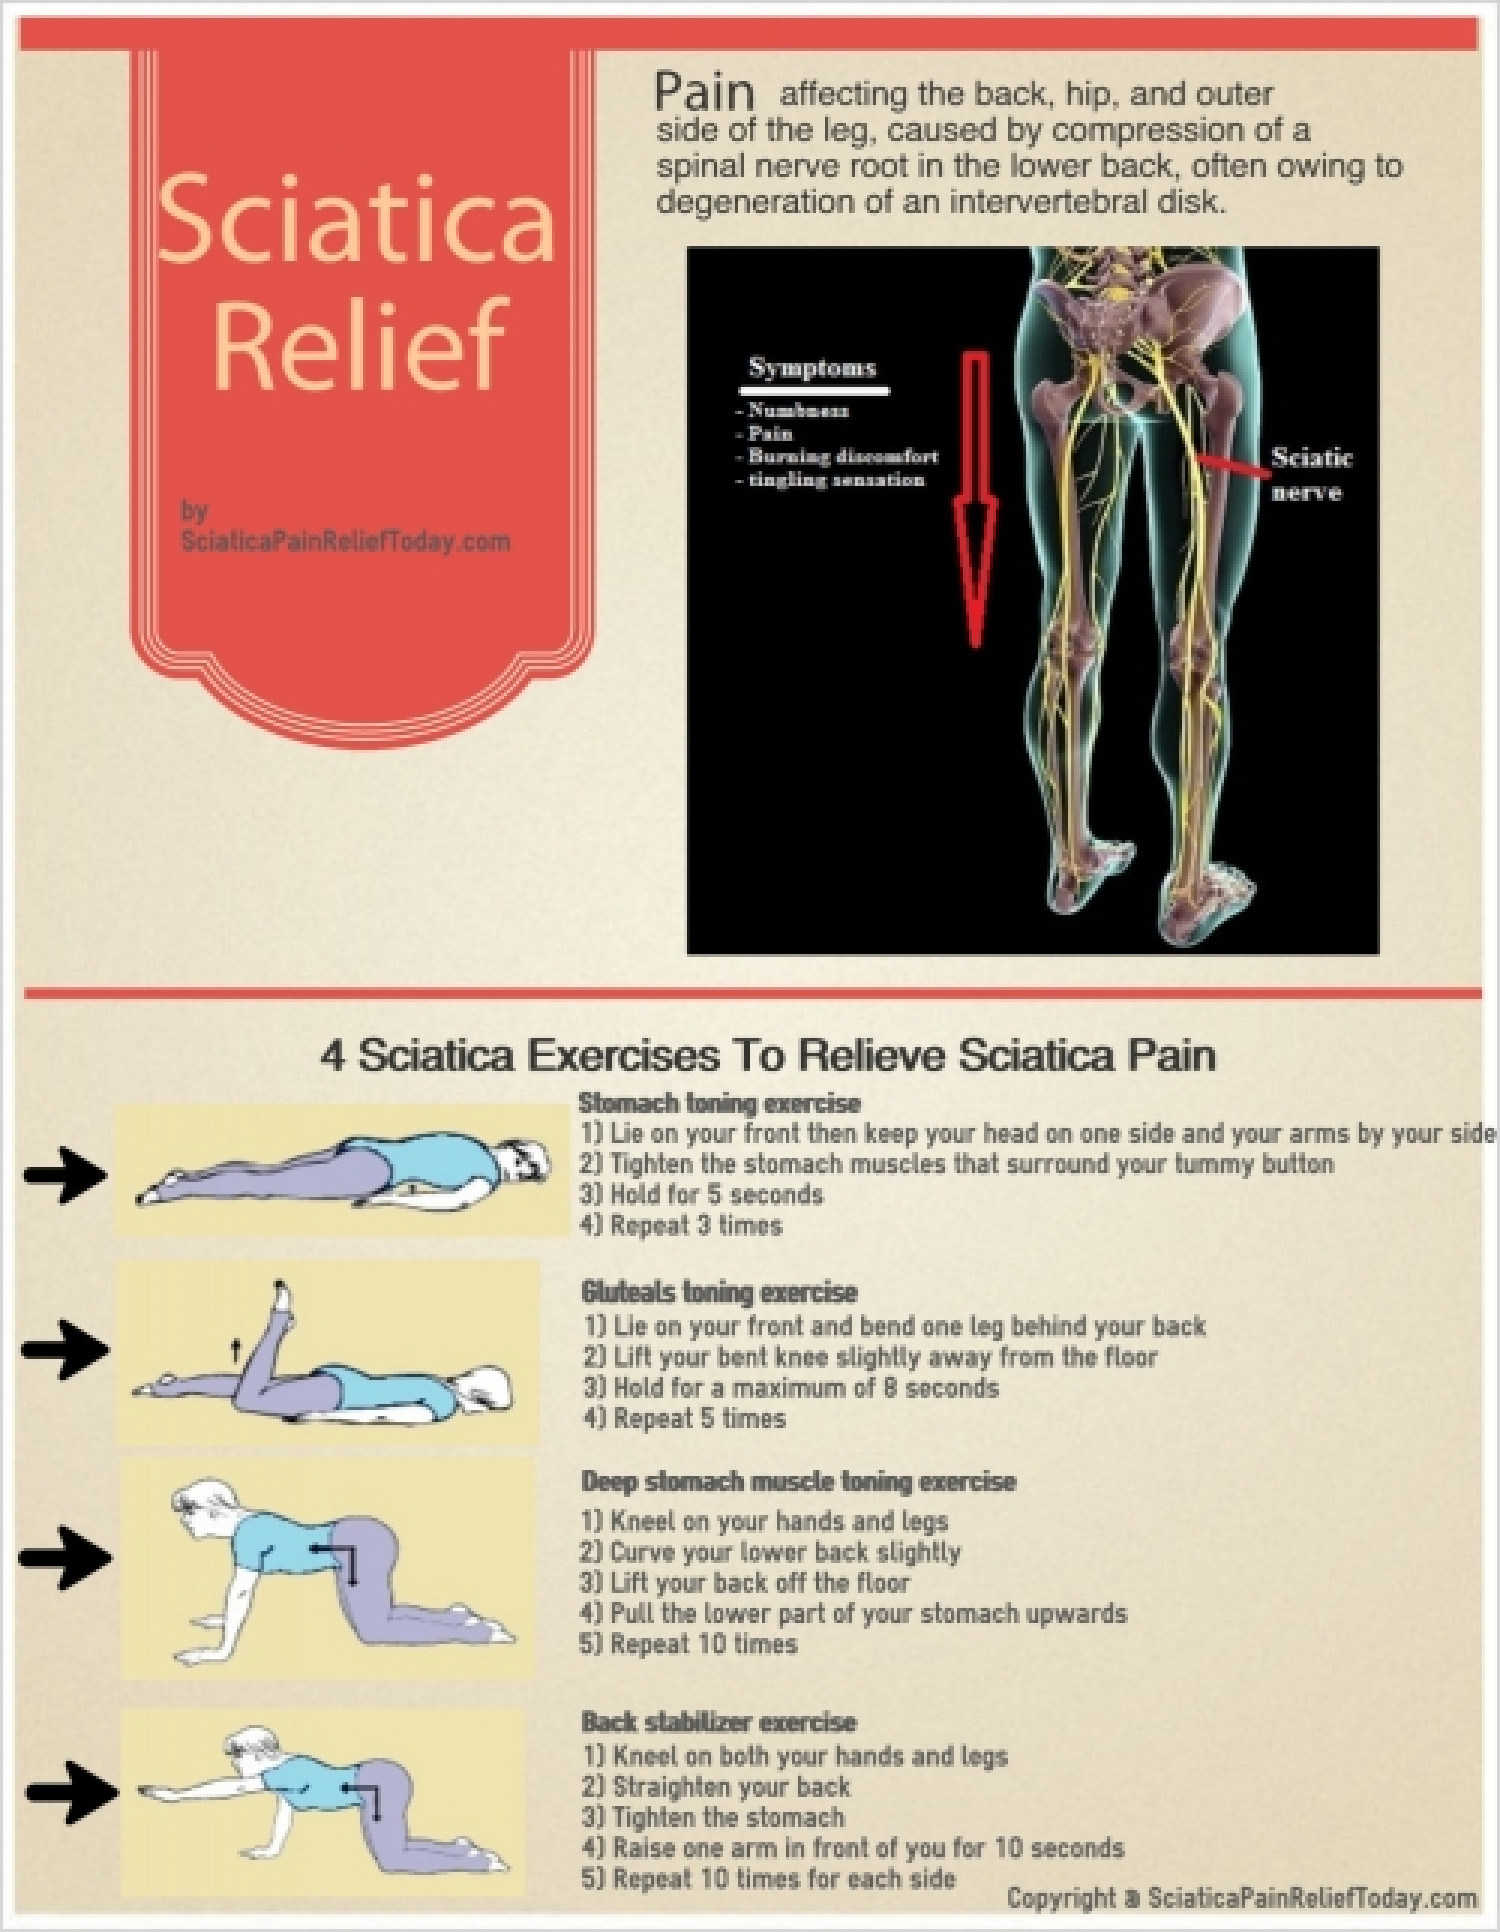 4 Sciatica Exercises To Relieve Sciatica Pain Infographic